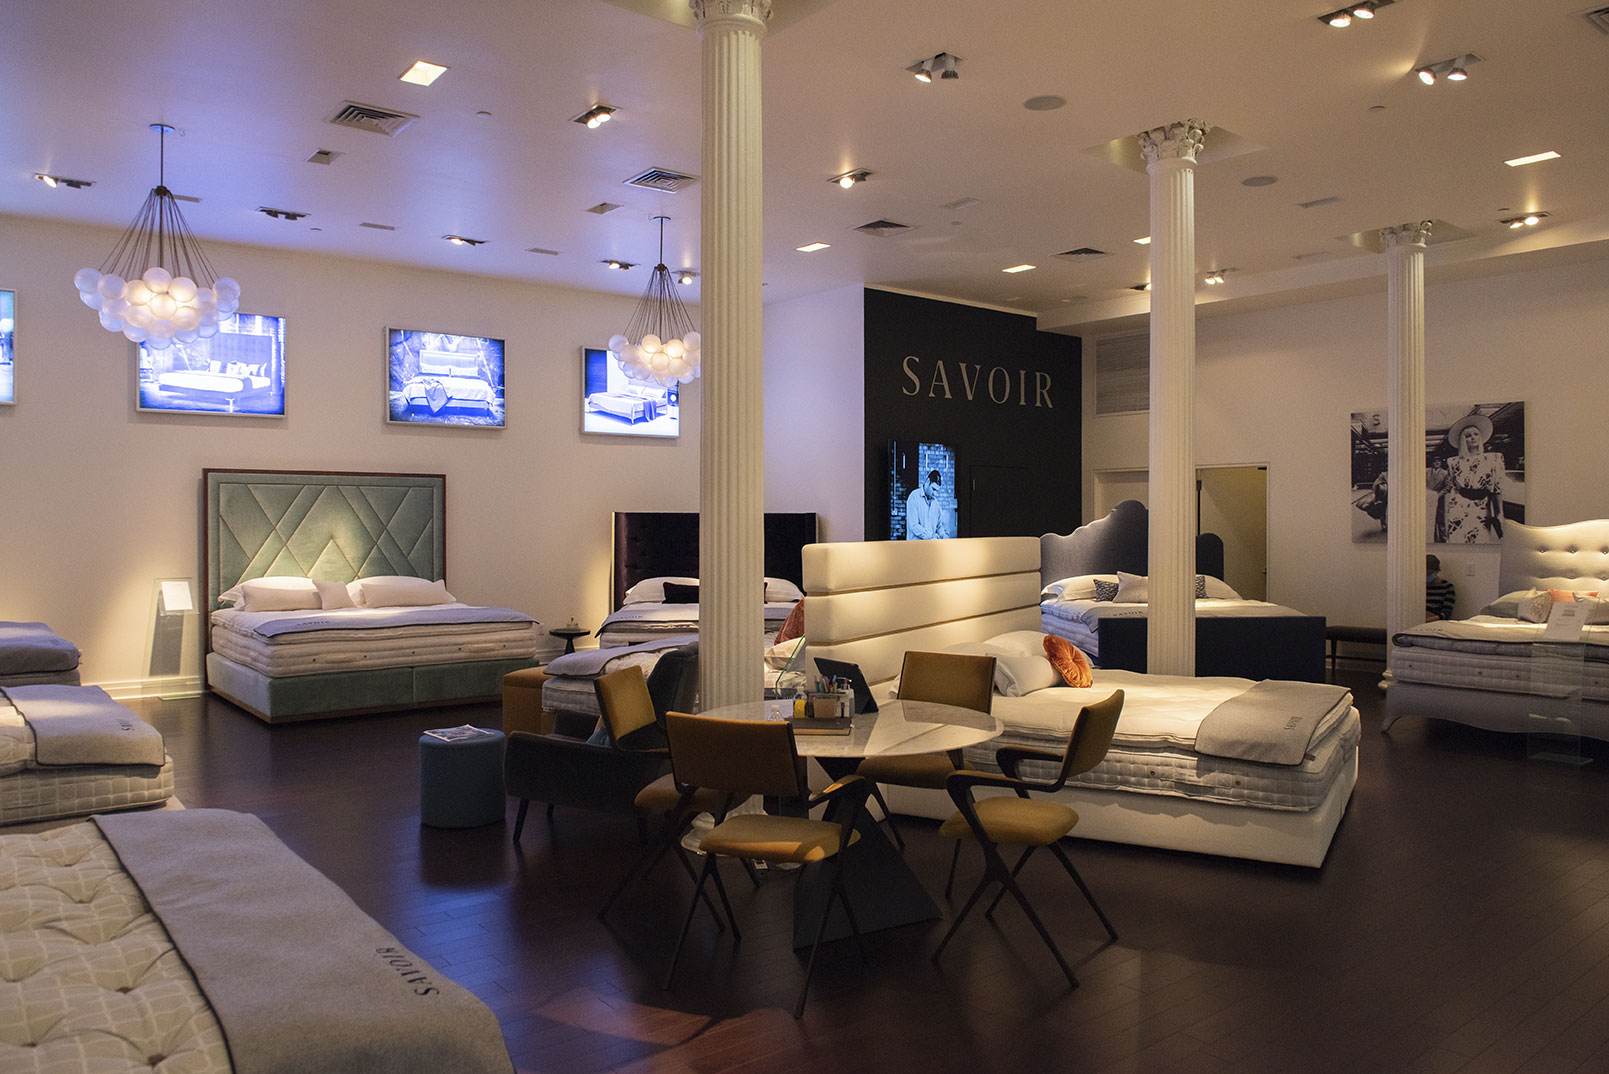 Savoir Beds at the greenwich hotel